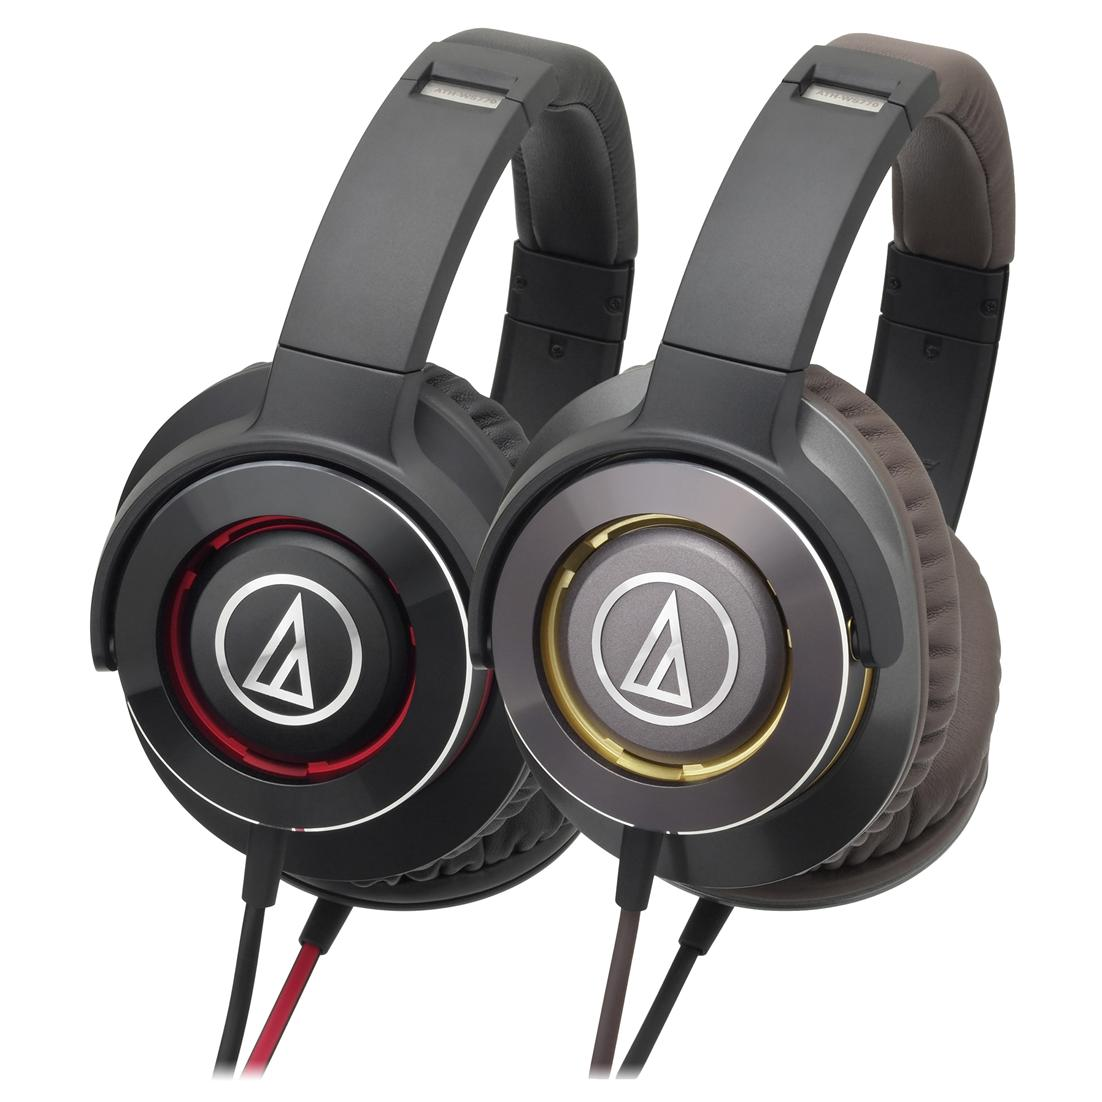 ST. AUDIO TECHNICA HEADSET WIRED ATH-WS770 BLACKRED/GUNMETAL